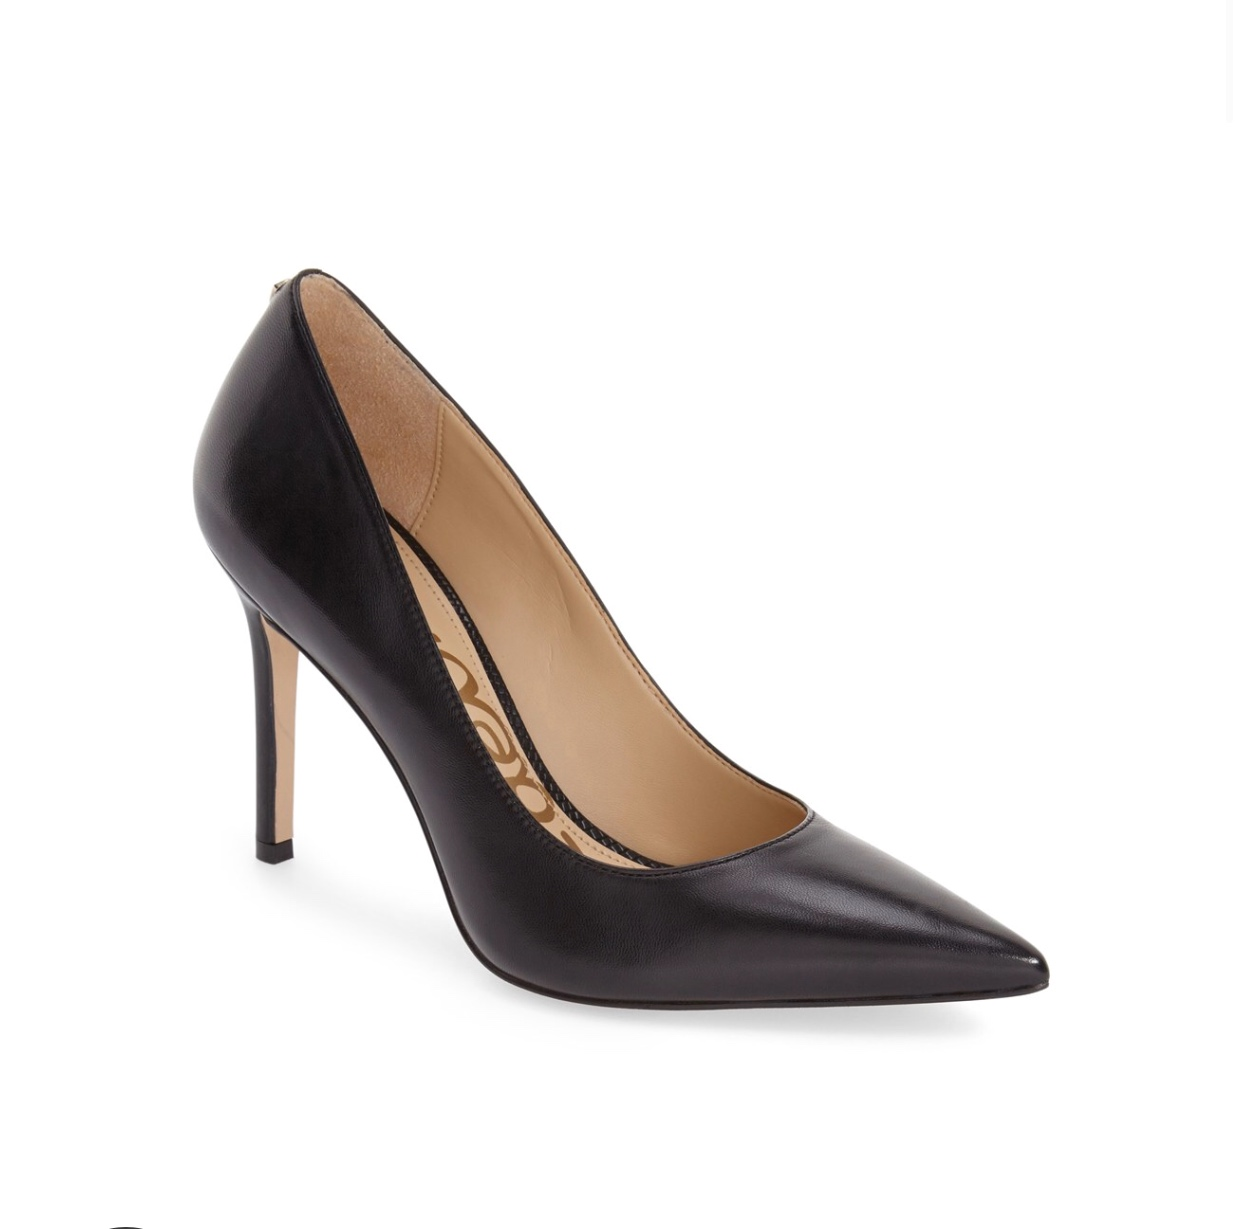 1d193a8ceae1 Nordstrom: Hazel Pointy Toe Pump SAM EDELMAN - Elevated Style